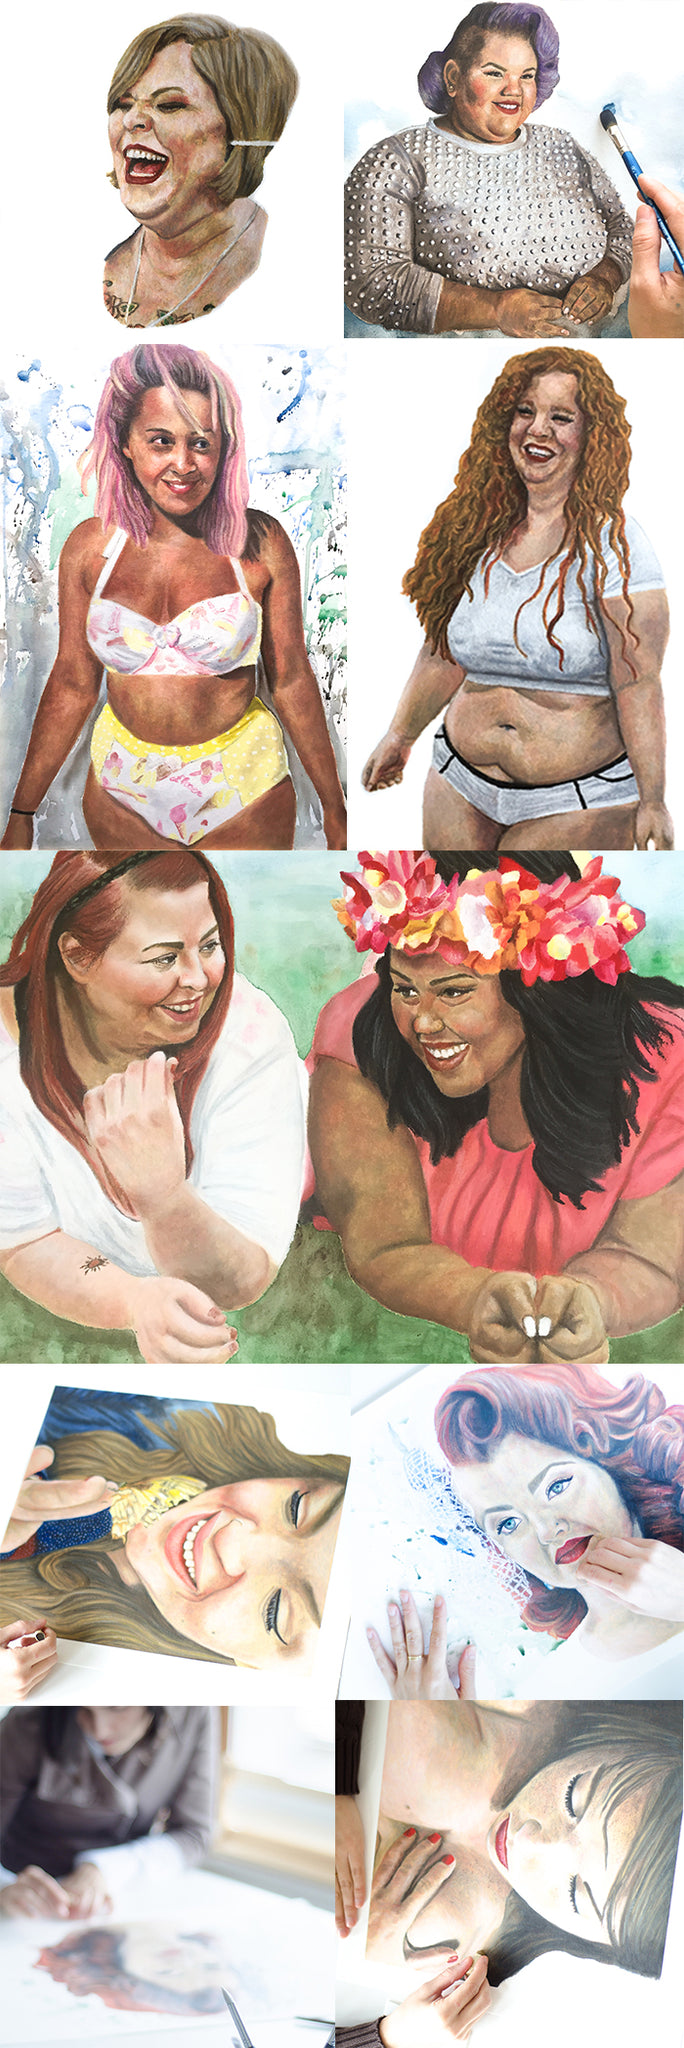 Flavia-Bernardes-Body-Positive-Art